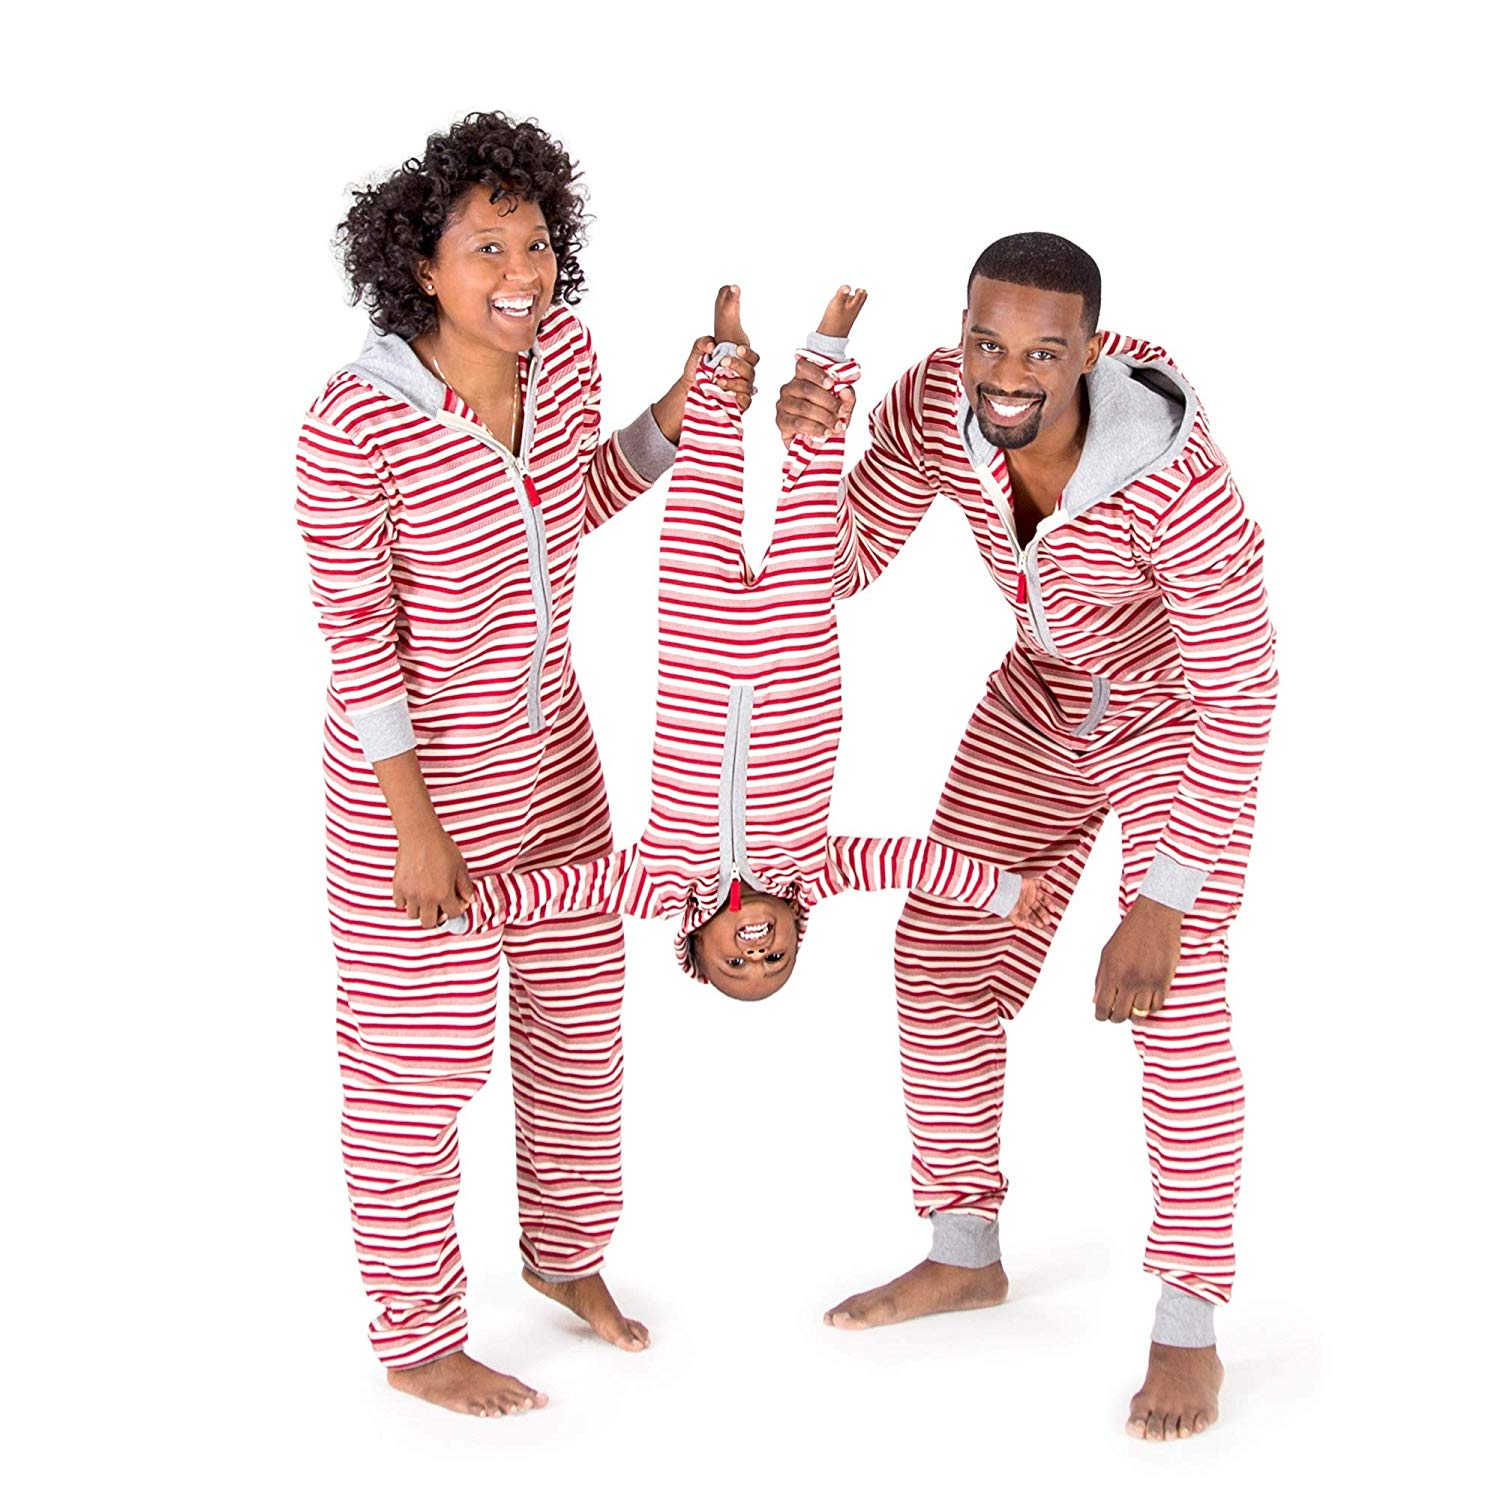 Burt's Bees Baby Holiday Family Jumpbees, Peppermint Stripe Jumpsuits